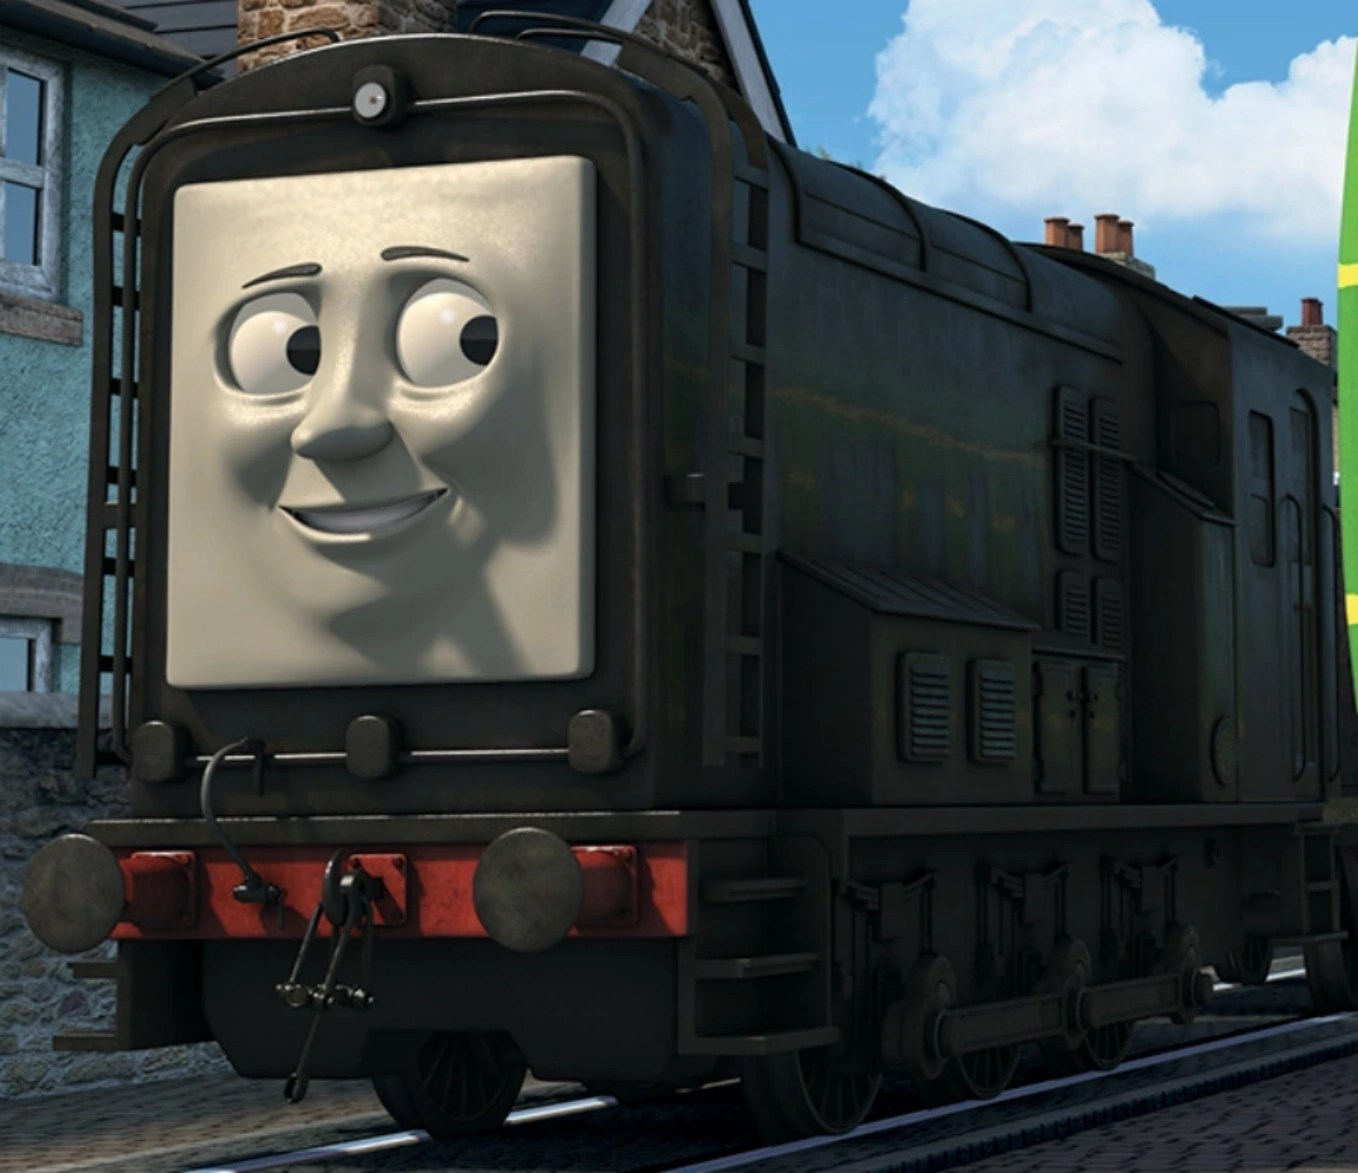 Bad Diesel Set Diesel Thomas The Tank Engine Wikia Fandom Powered By Wikia